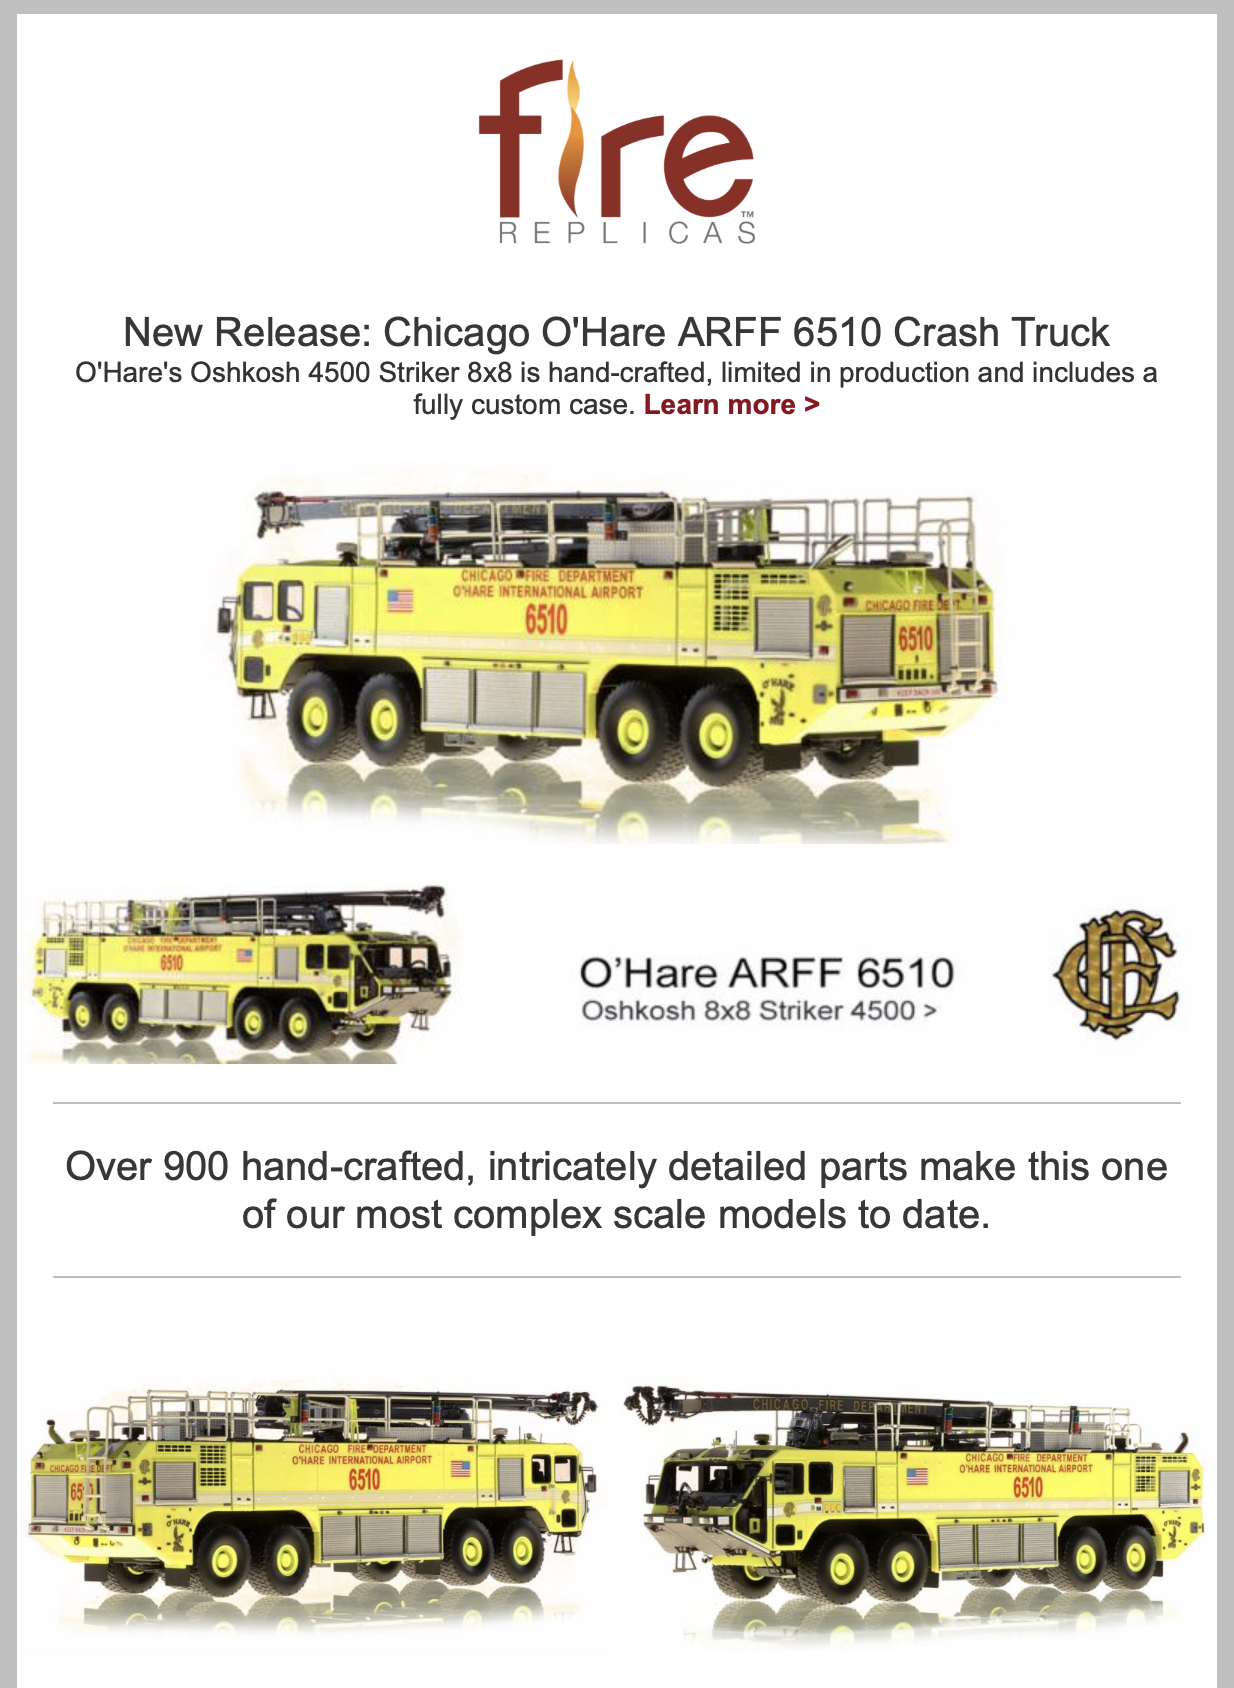 Fire Replicas model of Chicago FD ARFF 6510 at O'Hare Airport - Oshkosh Striker 8x8